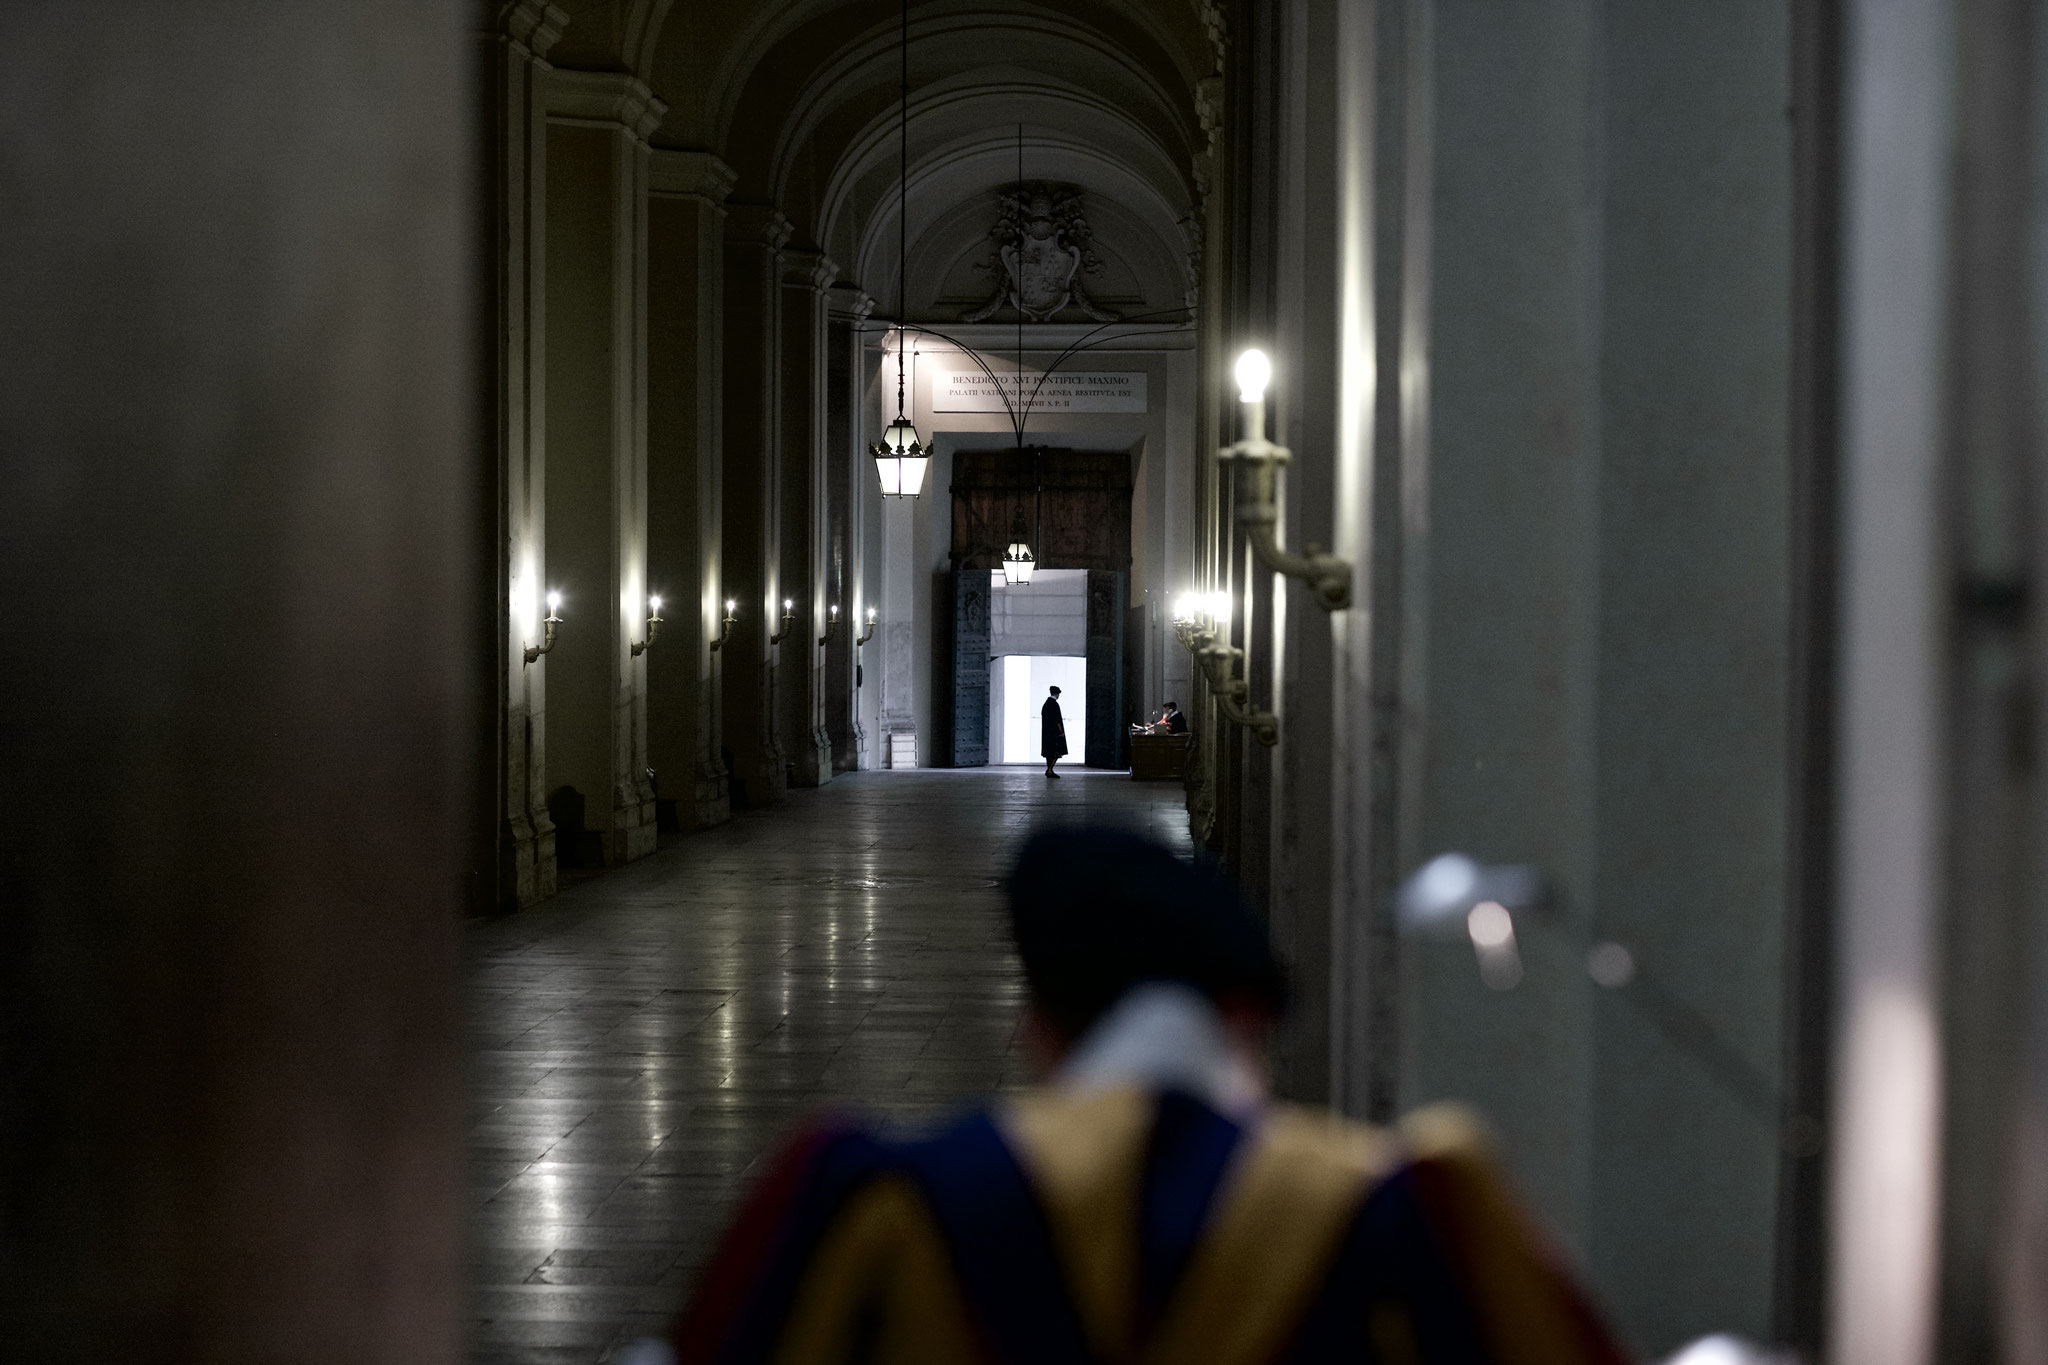 Swiss Guards in Braccio di Constantino.